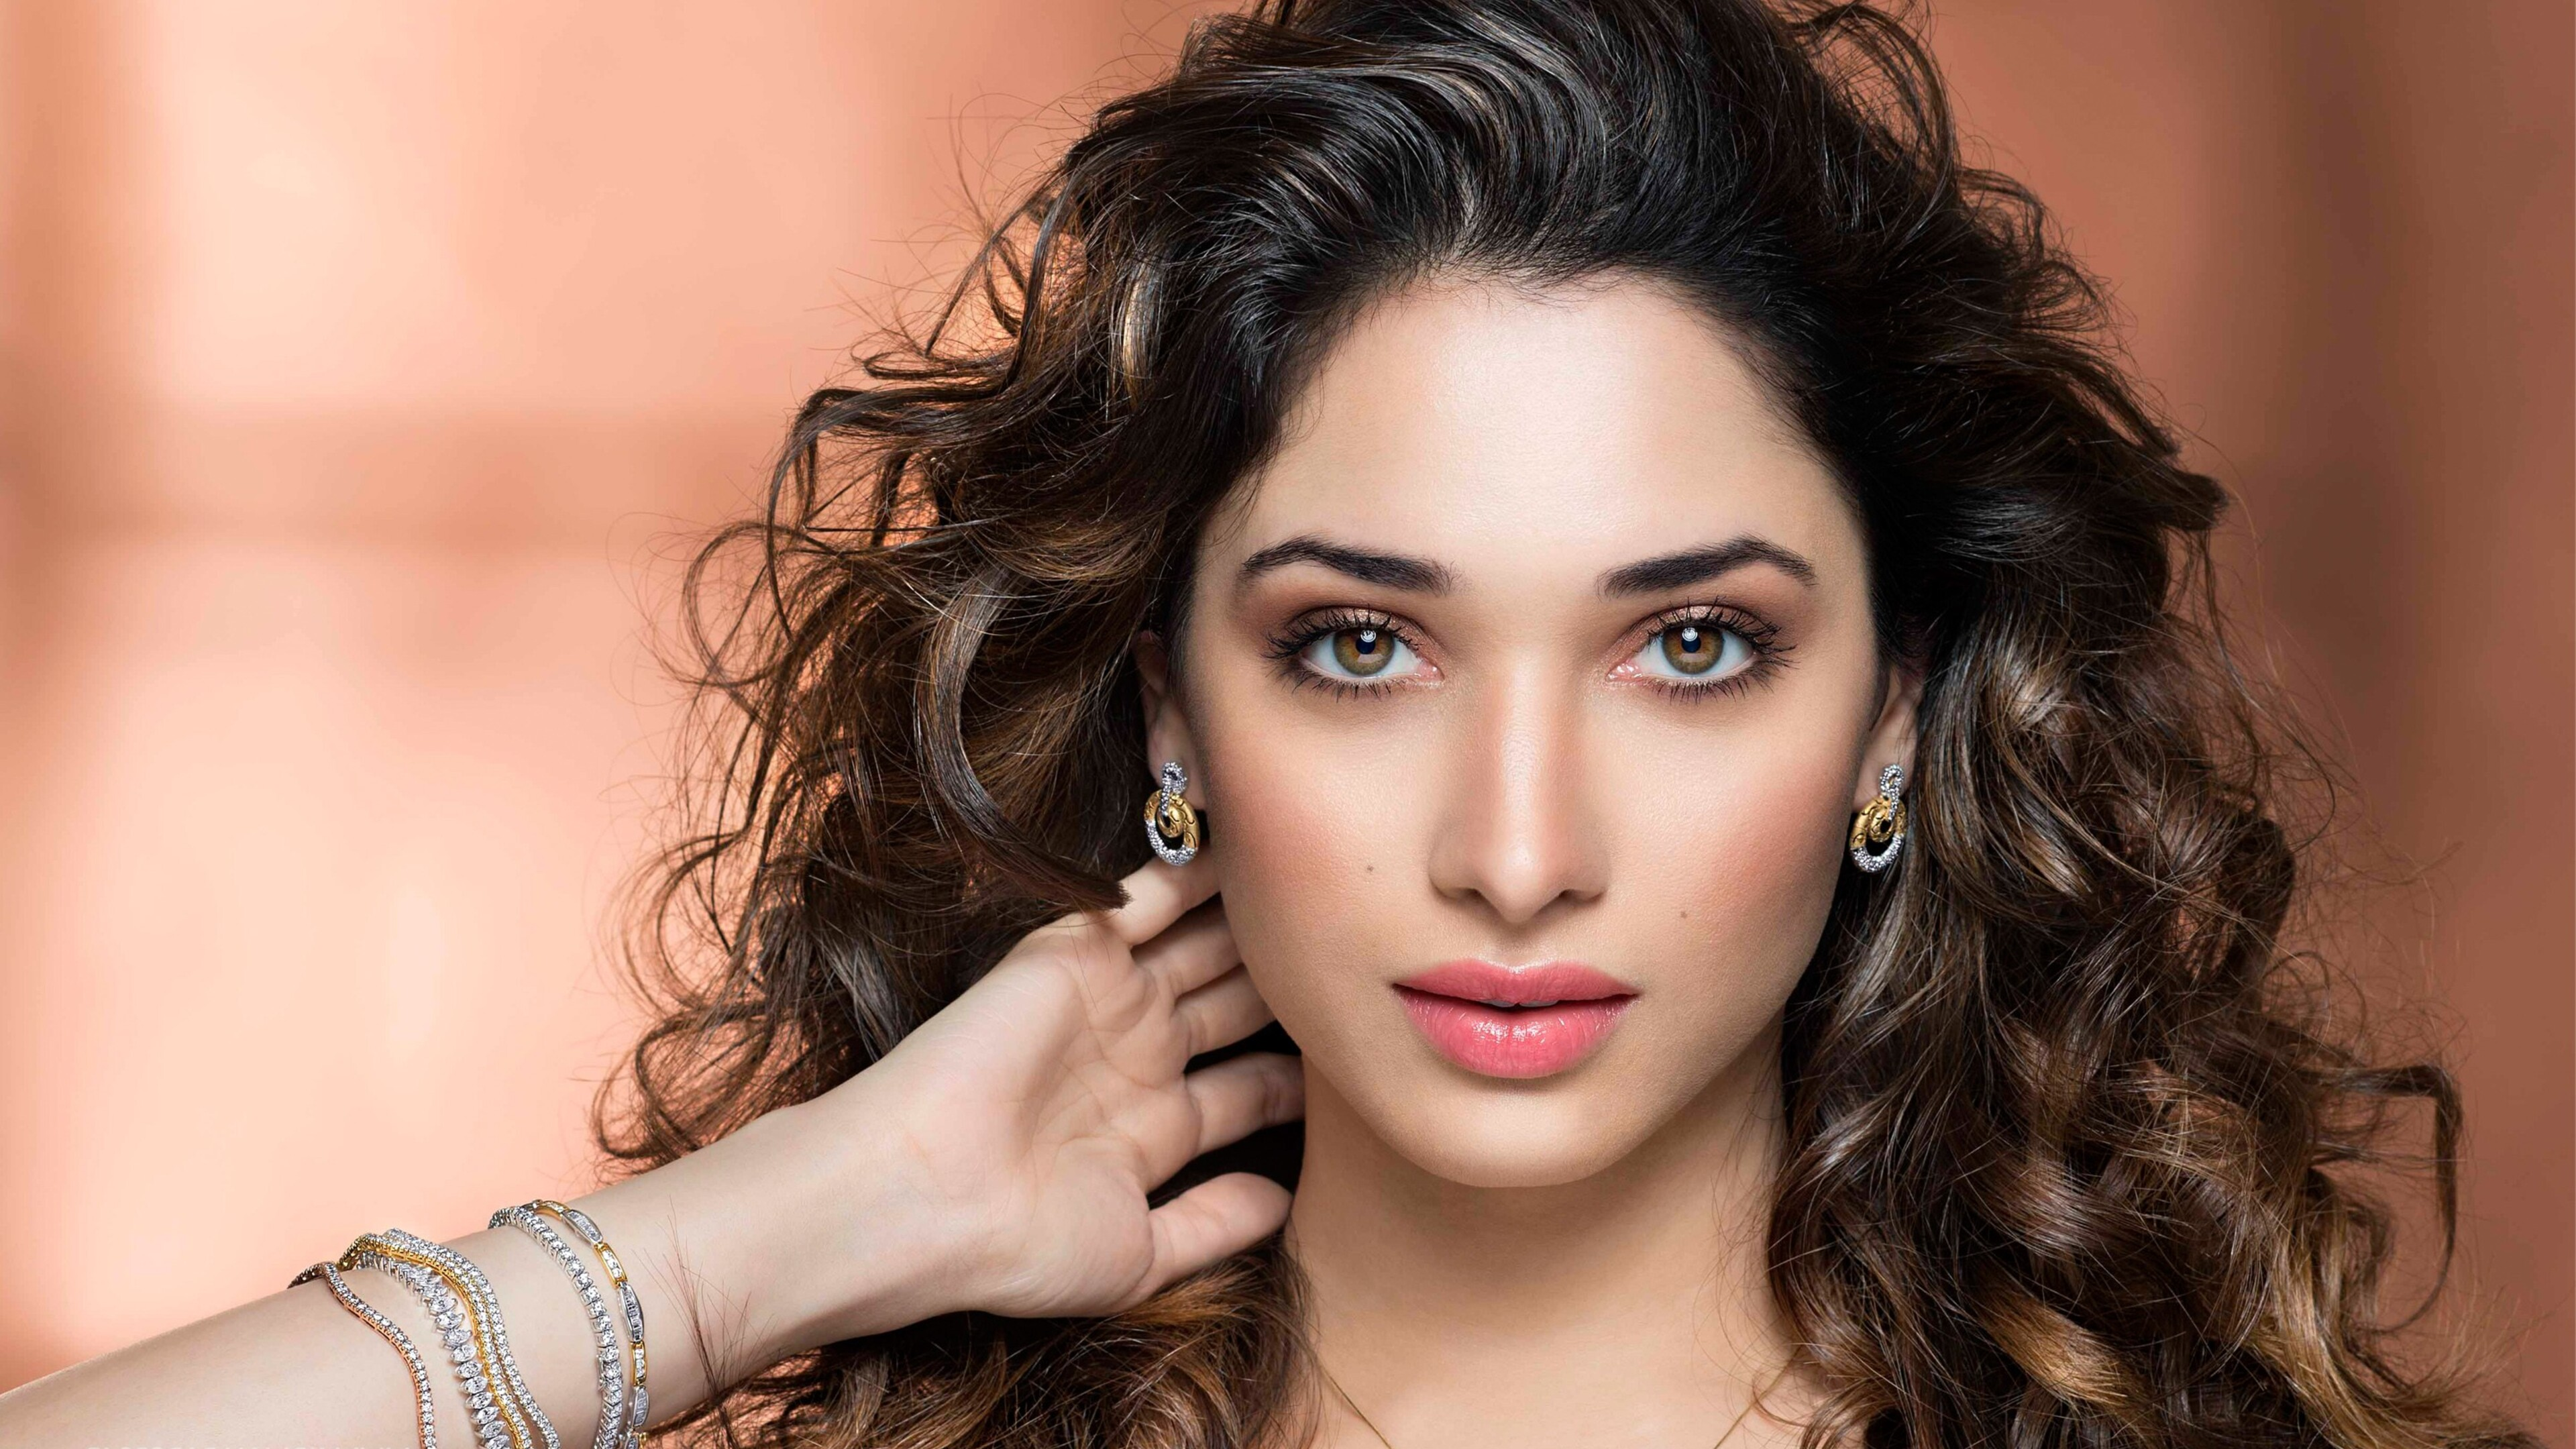 3840x2160 tamanna 4k hd 4k wallpapers, images, backgrounds, photos